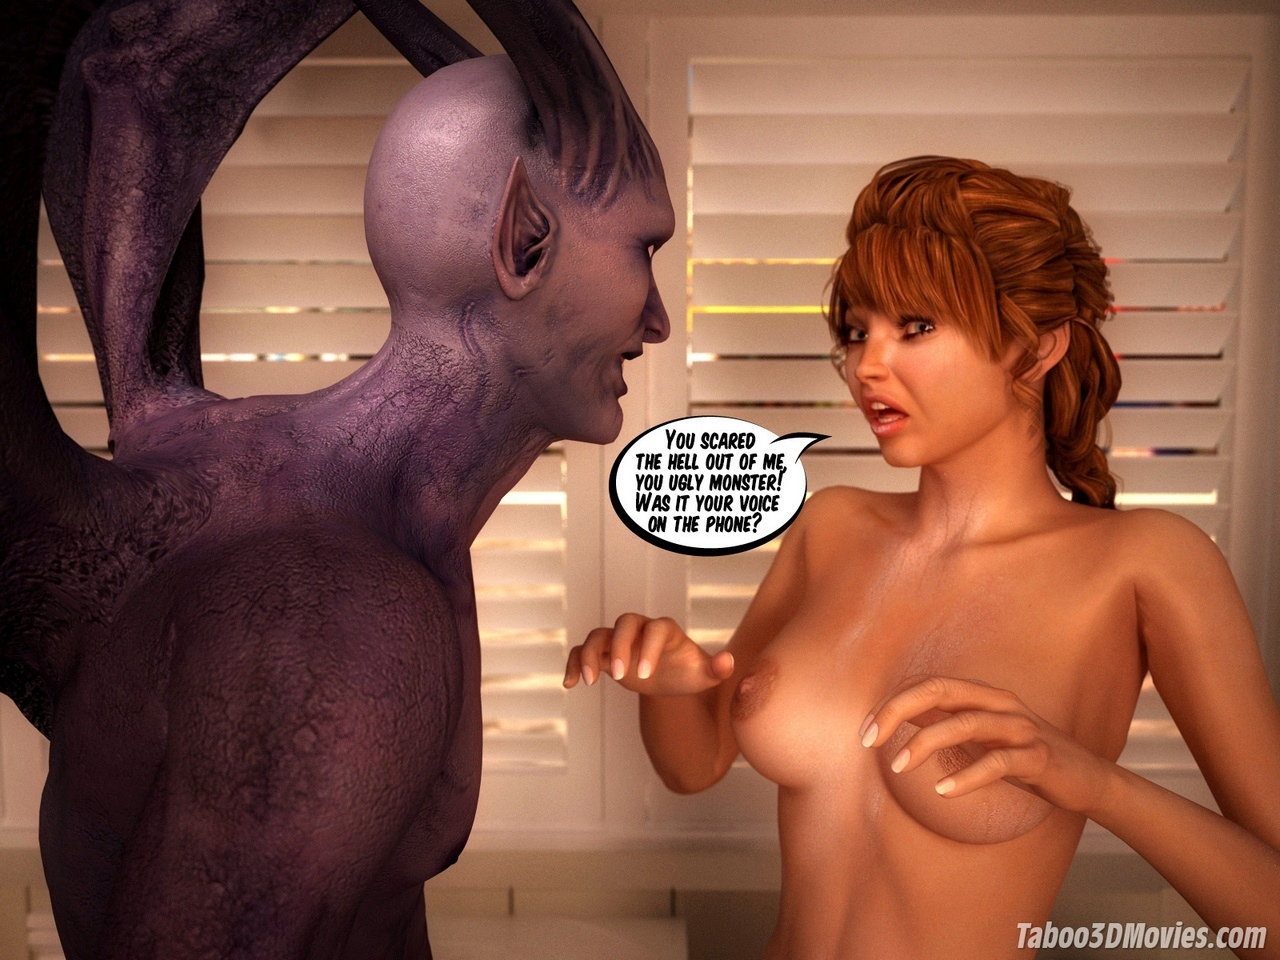 Demon-s-Slut 26 free sex comic